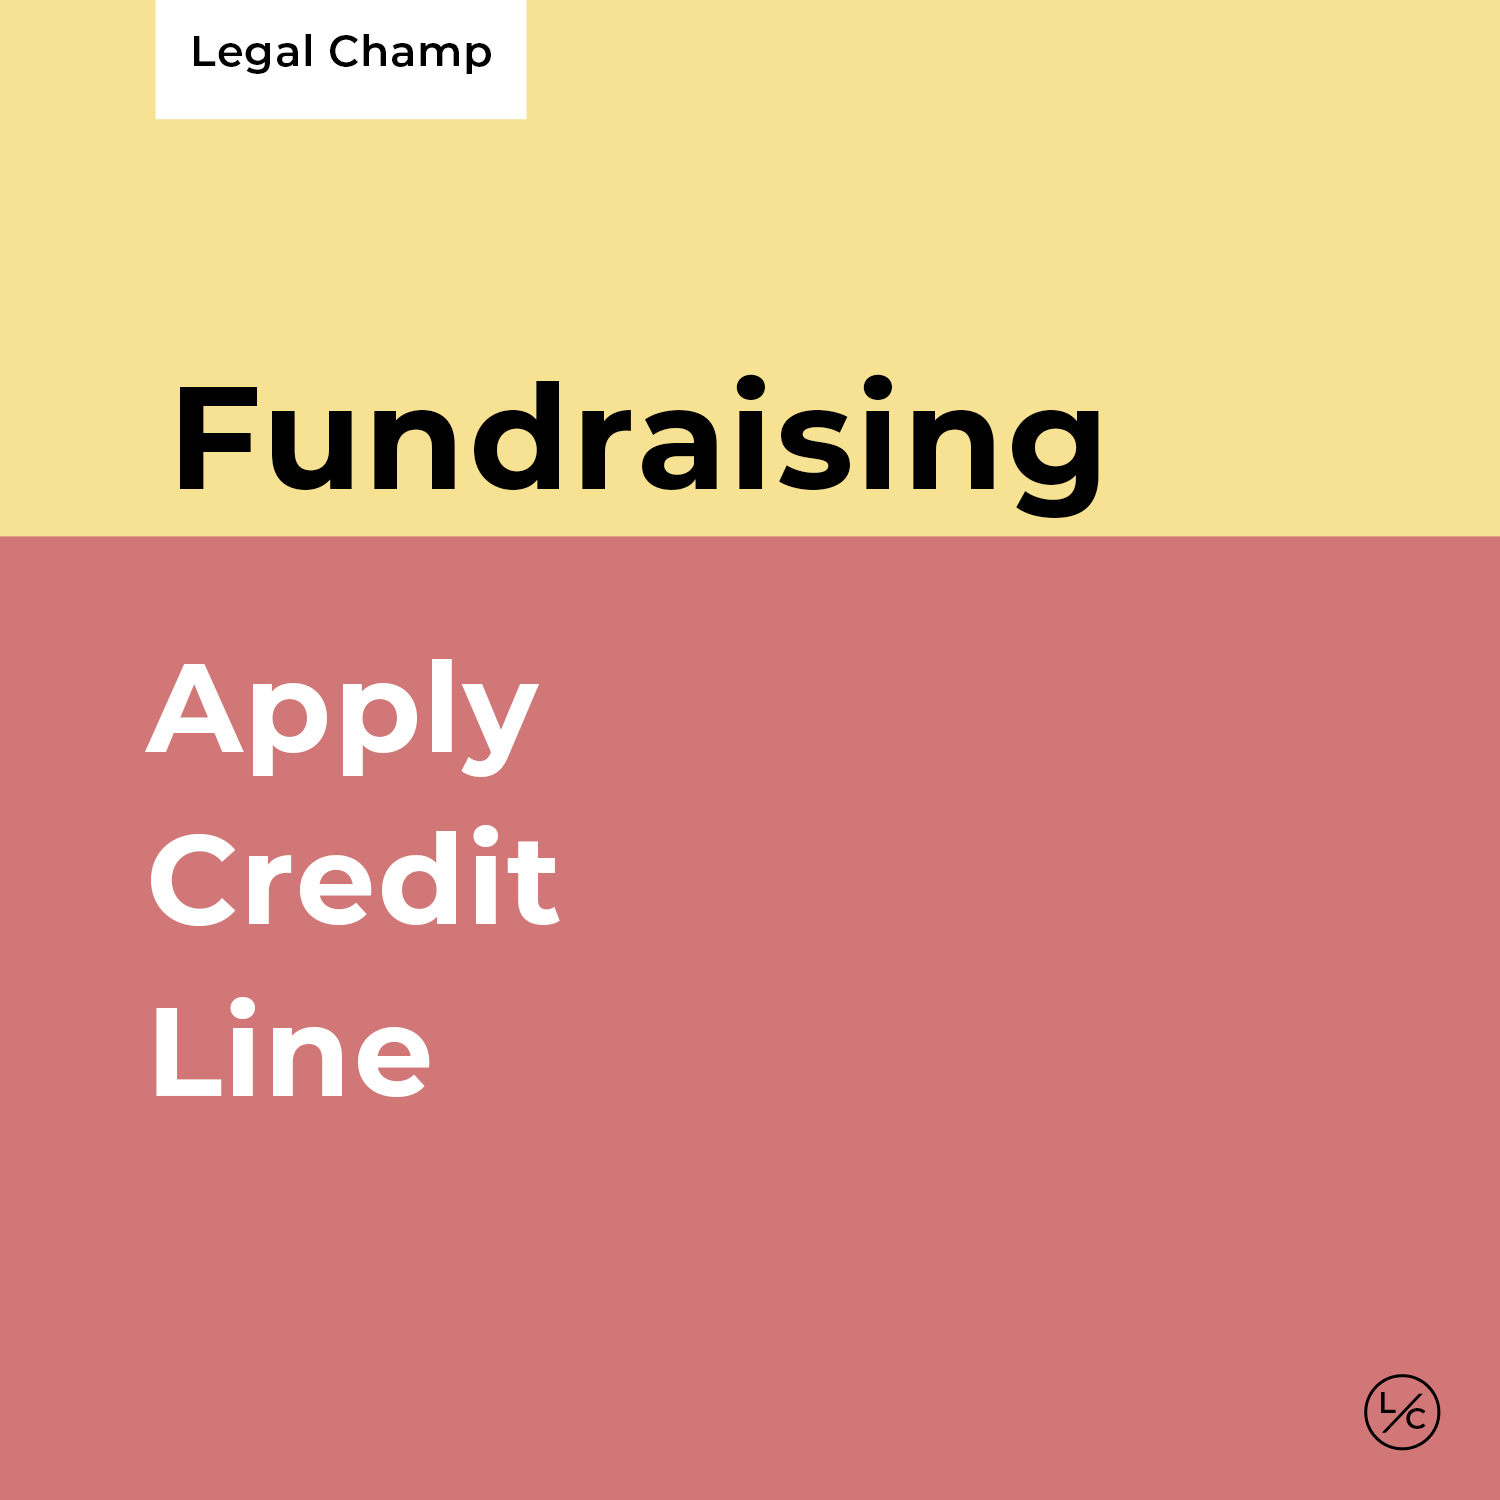 Apply Credit Line